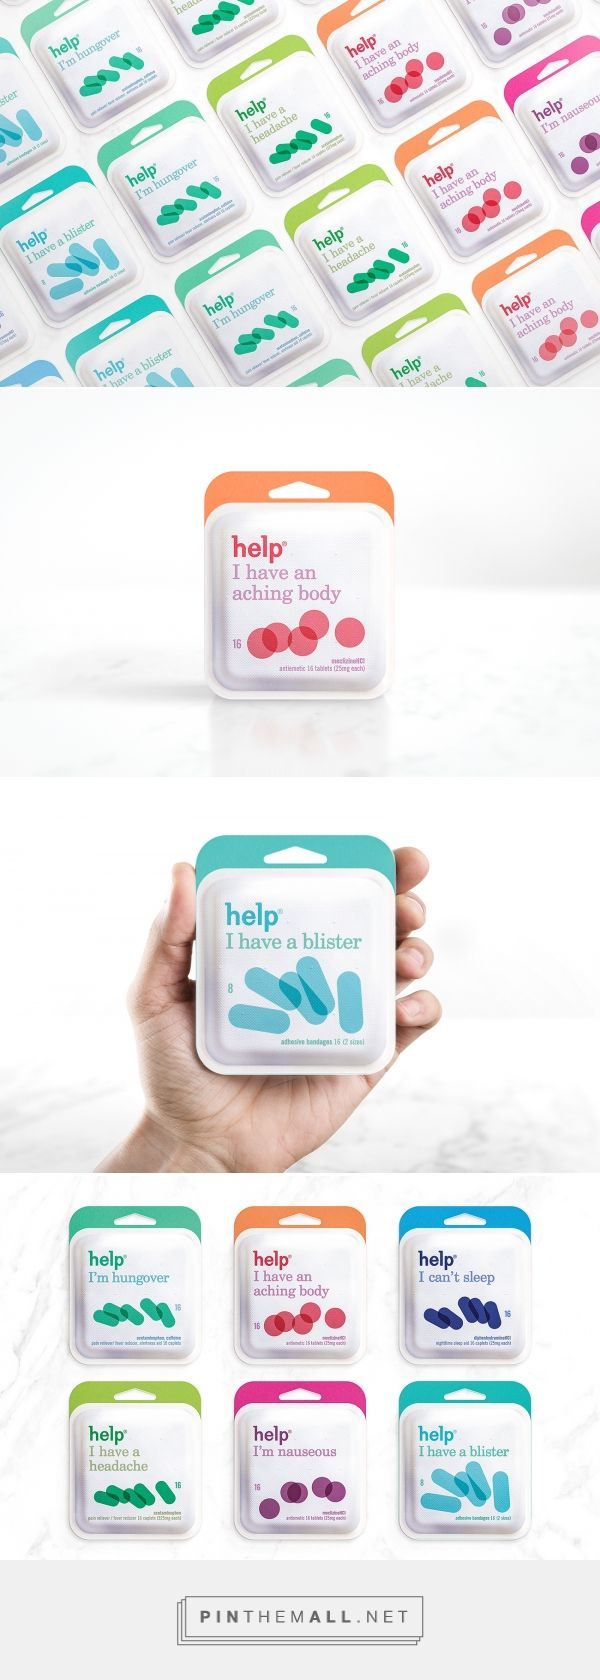 Help Remedies Paper packaging design by Phillip Nessen - http://www.packagingoftheworld.com/2017/02/help-remedies-paper-pack.html